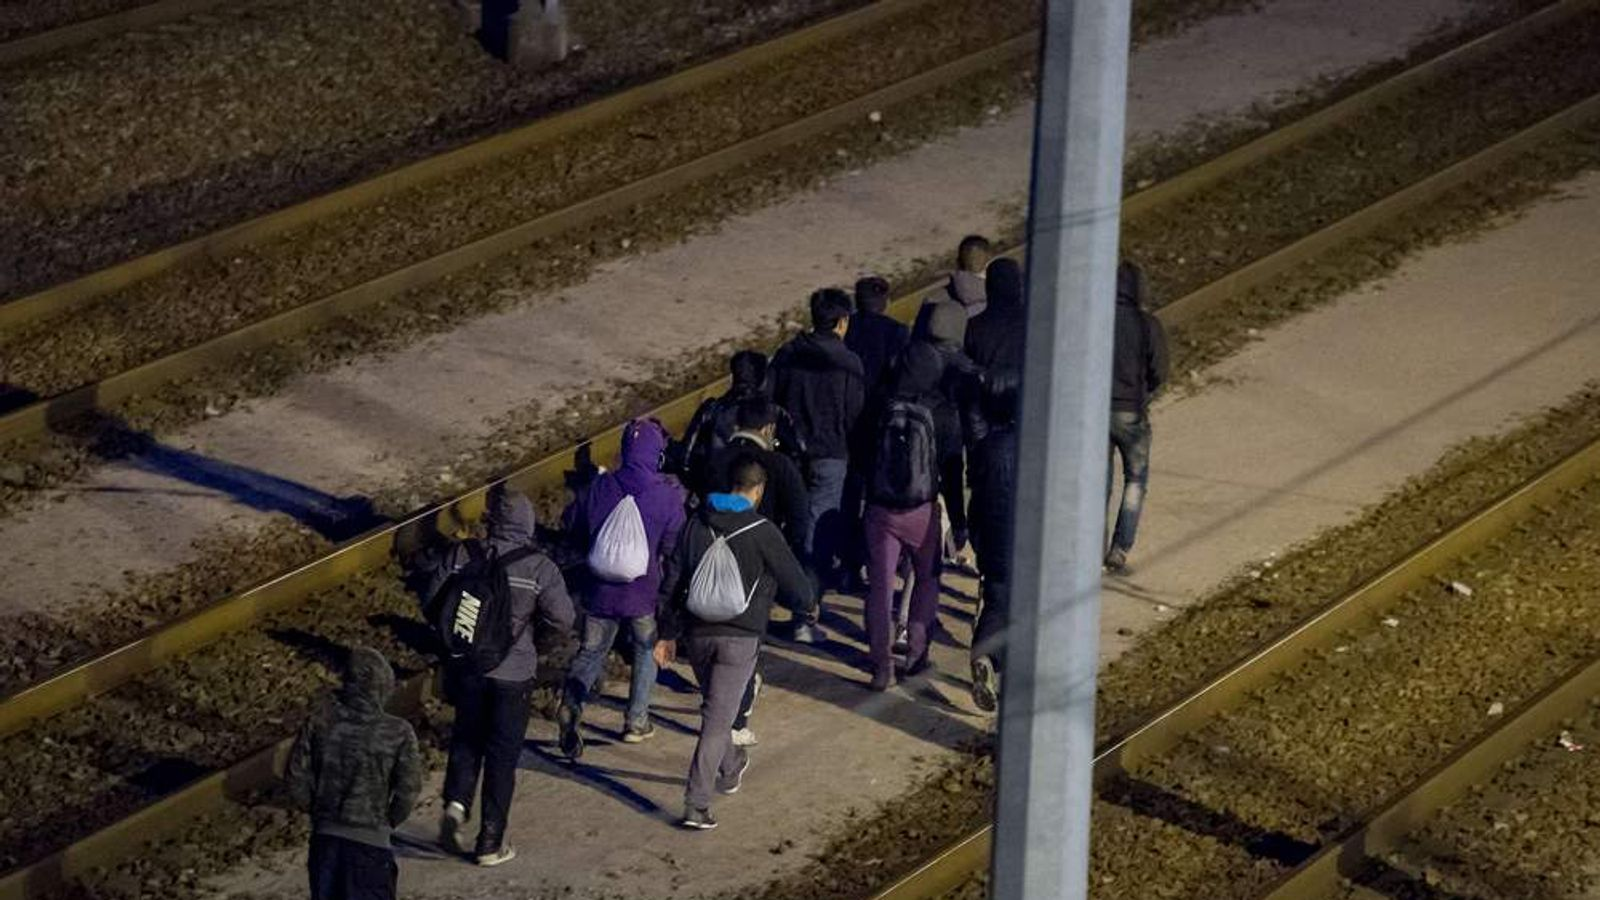 EUROPE-MIGRANTS-FRANCE-BRITAIN